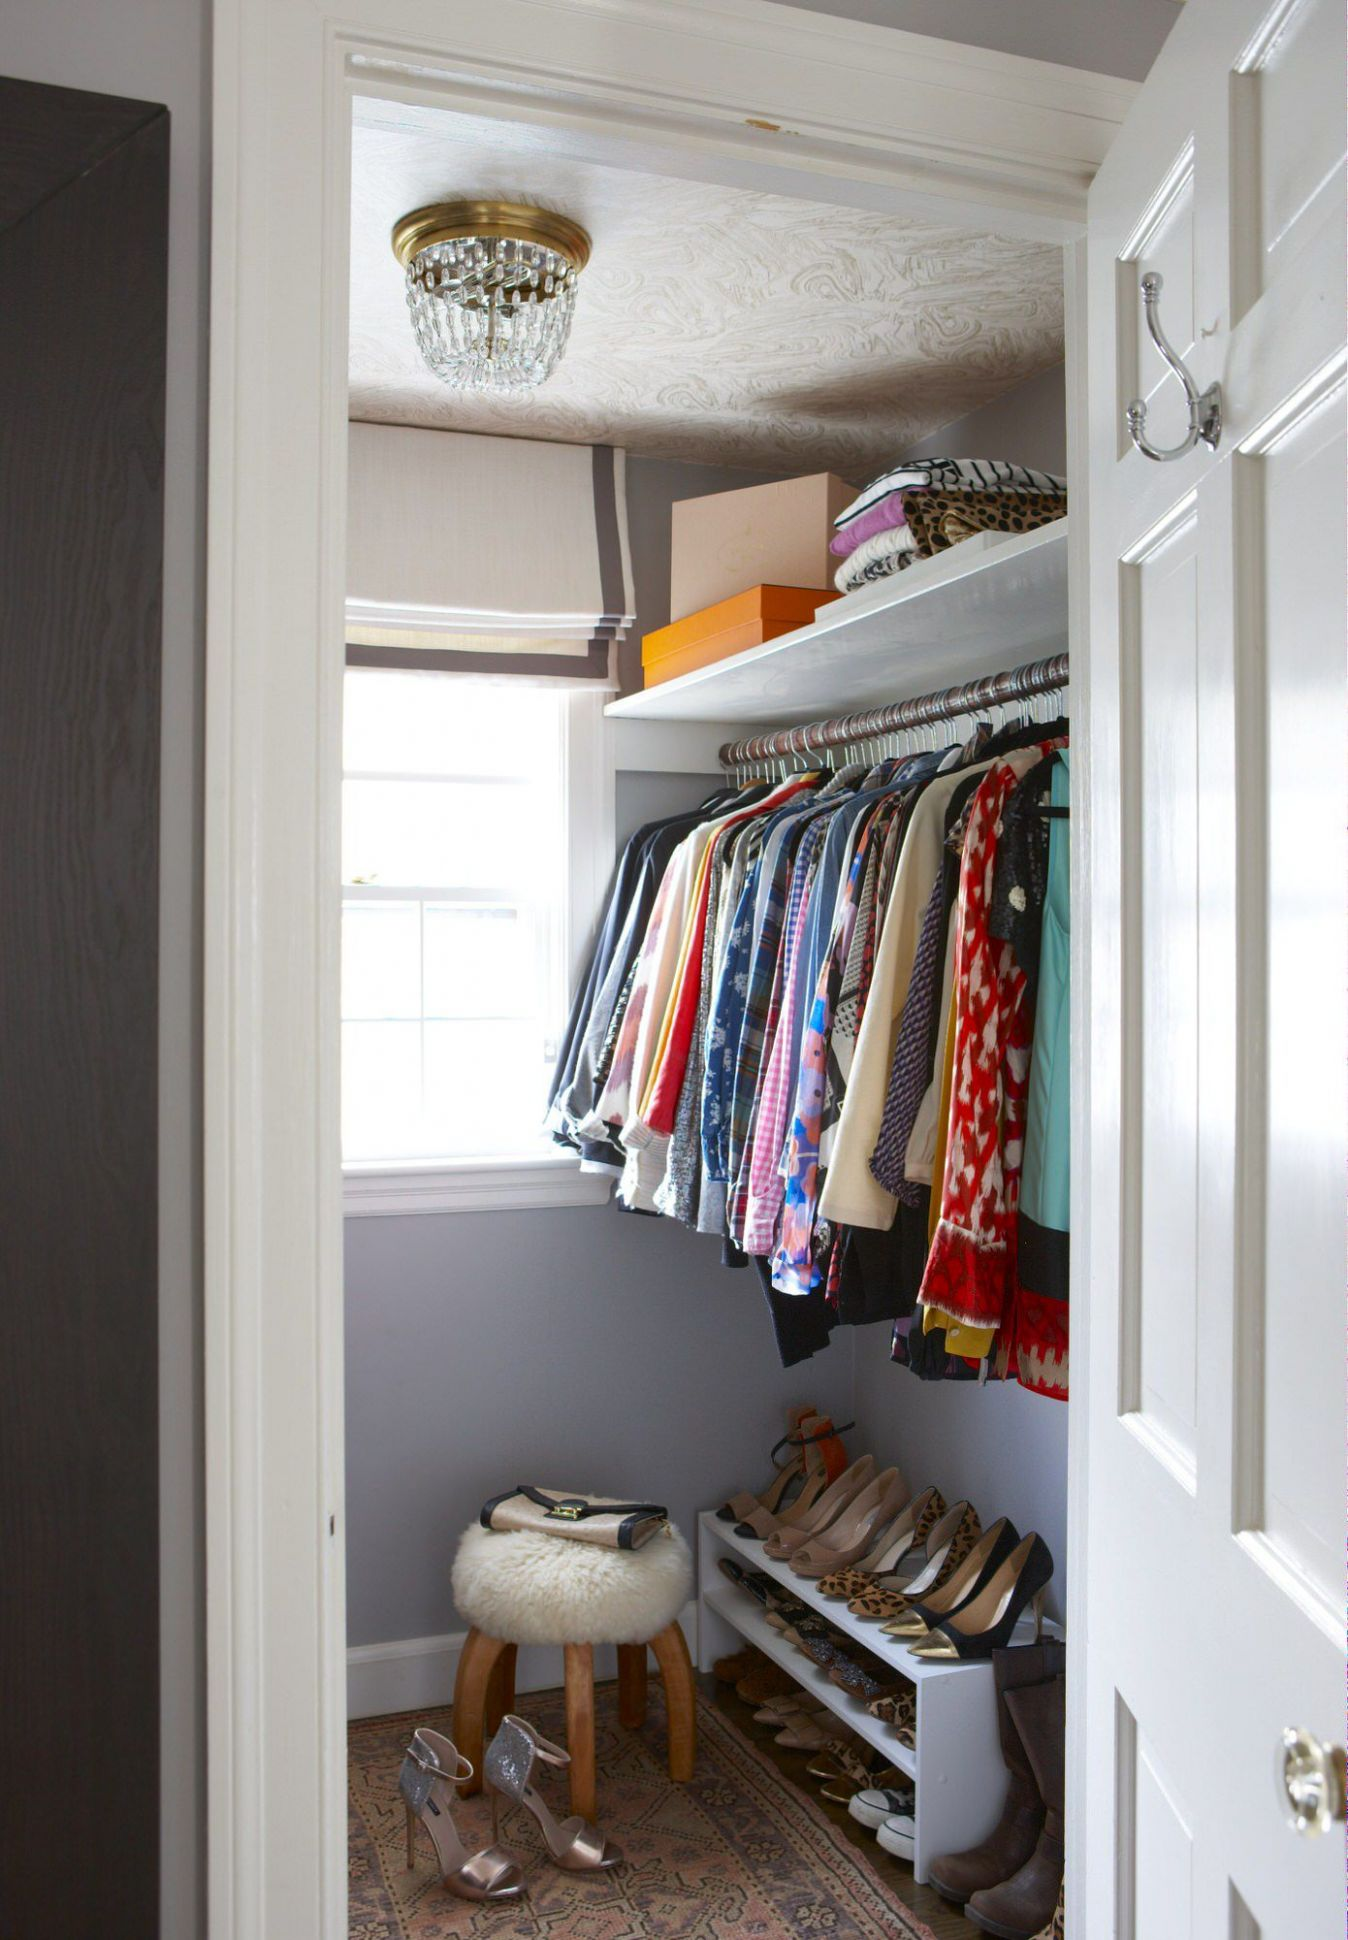 How To Build A Walk In Closet Small Bedroom - Image of Bathroom ..